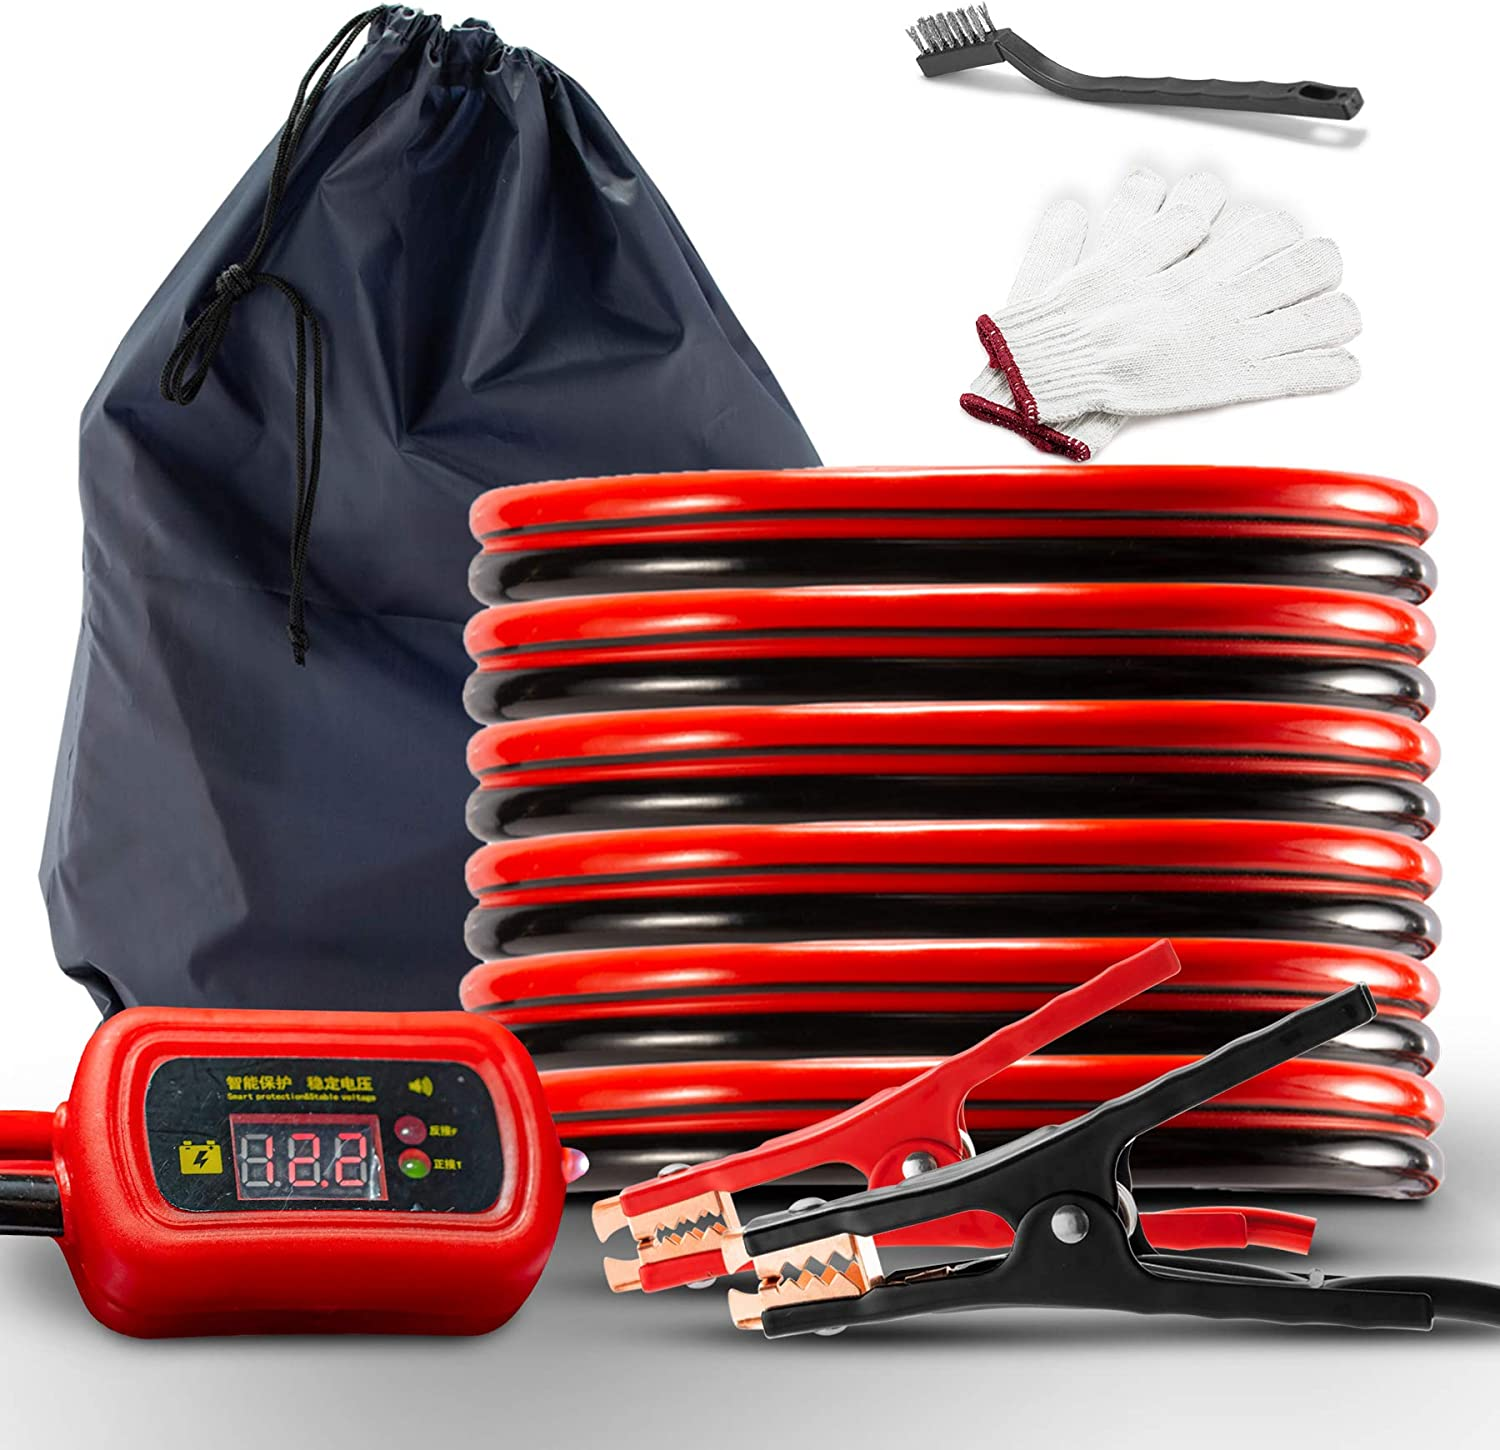 GWJ Jumper Cables with LED Light 4 Gauge 25 Feet Heavy Duty Booster Cables with Carry Bag Safety Gloves and Brush